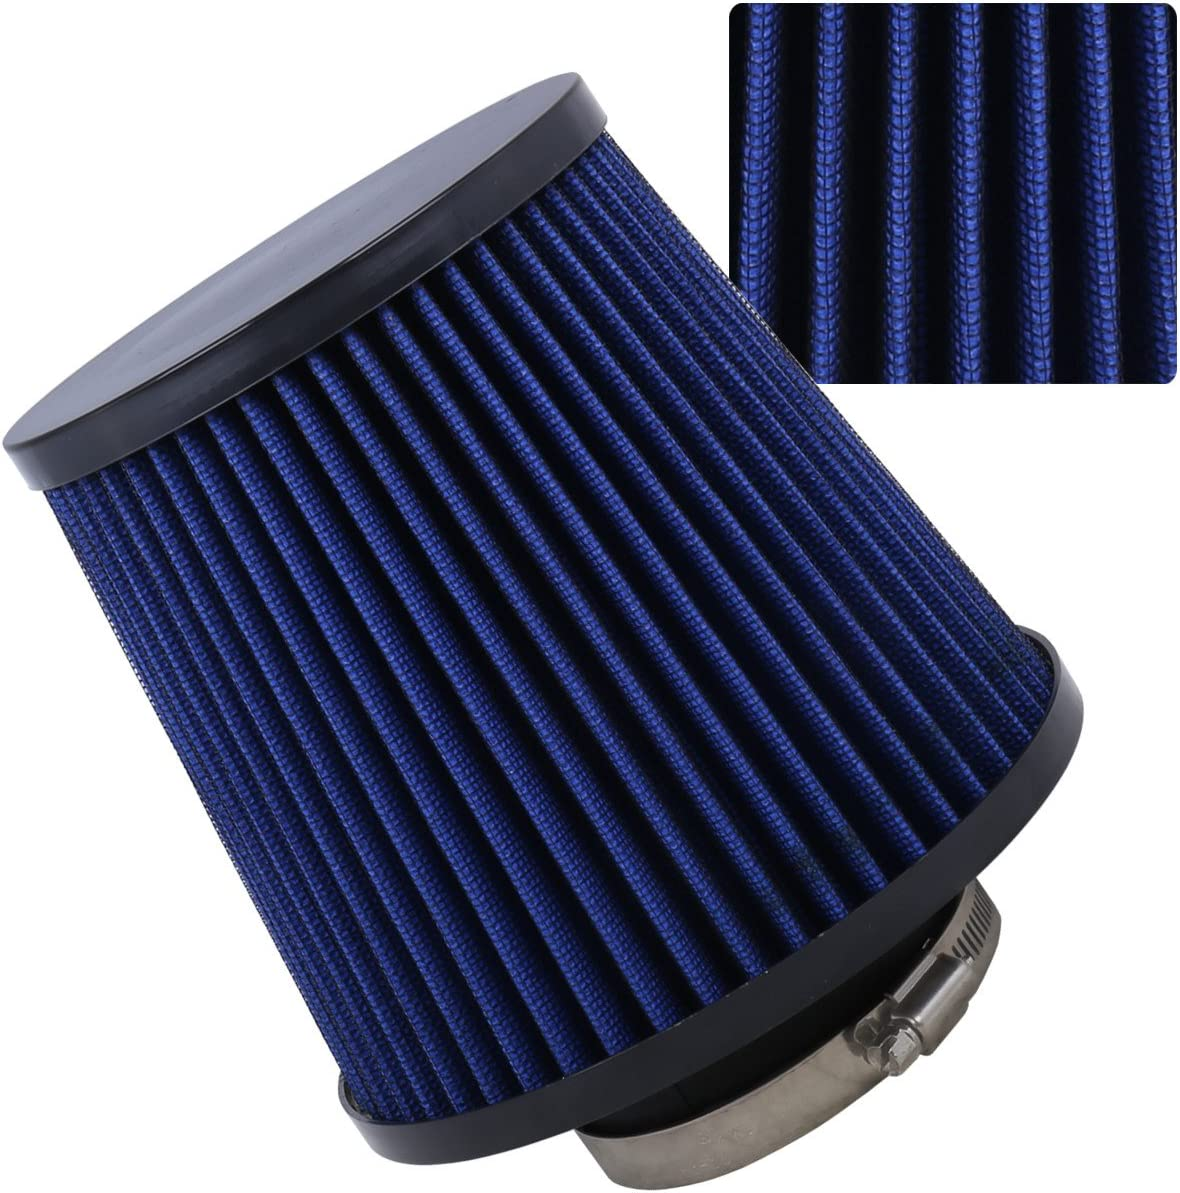 "RED 1999 UNIVERSAL 152mm 6/"" INCHES DIAMETER TRUCK DRY AIR INTAKE FILTER"